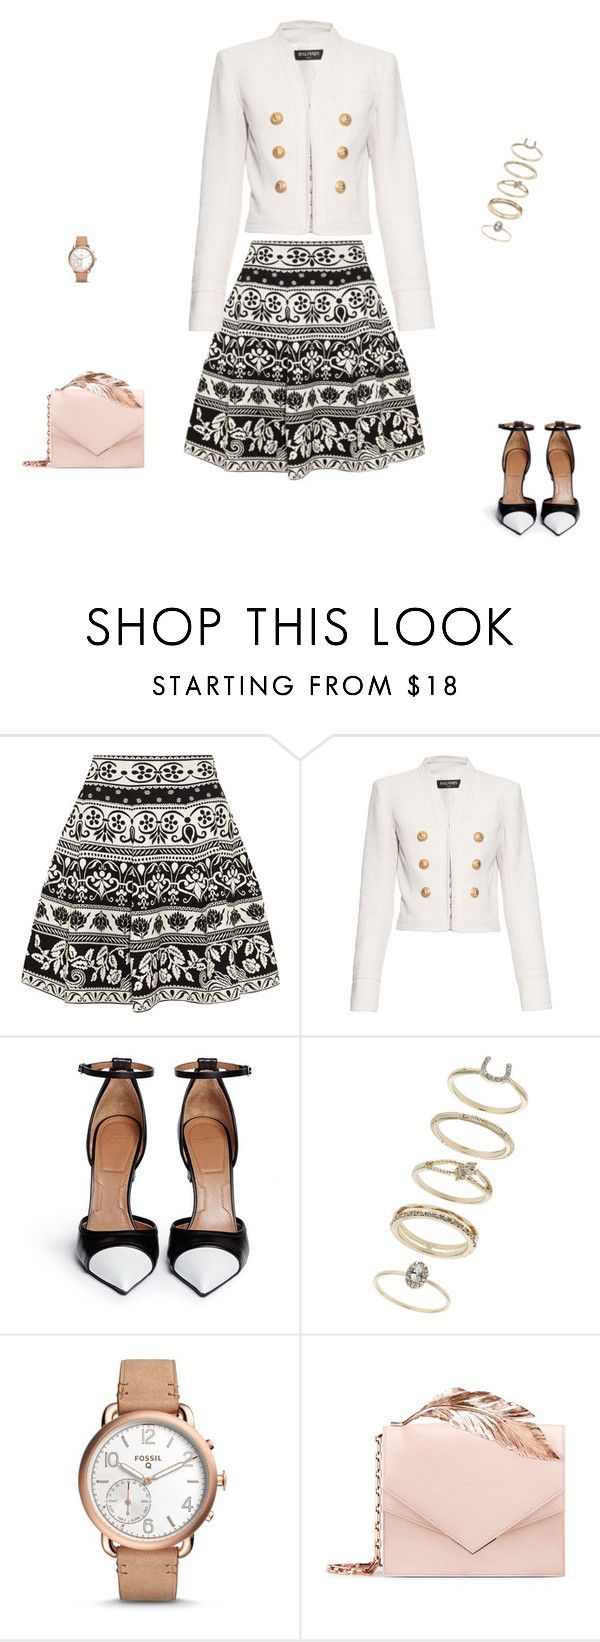 """""""Untitled #8656"""" by explorer-14576312872 ❤ liked on Polyvore featuring Alexander McQueen, Balmain, Givenchy, Miss Selfridge, FOSSIL and RALPH & RUSSO"""